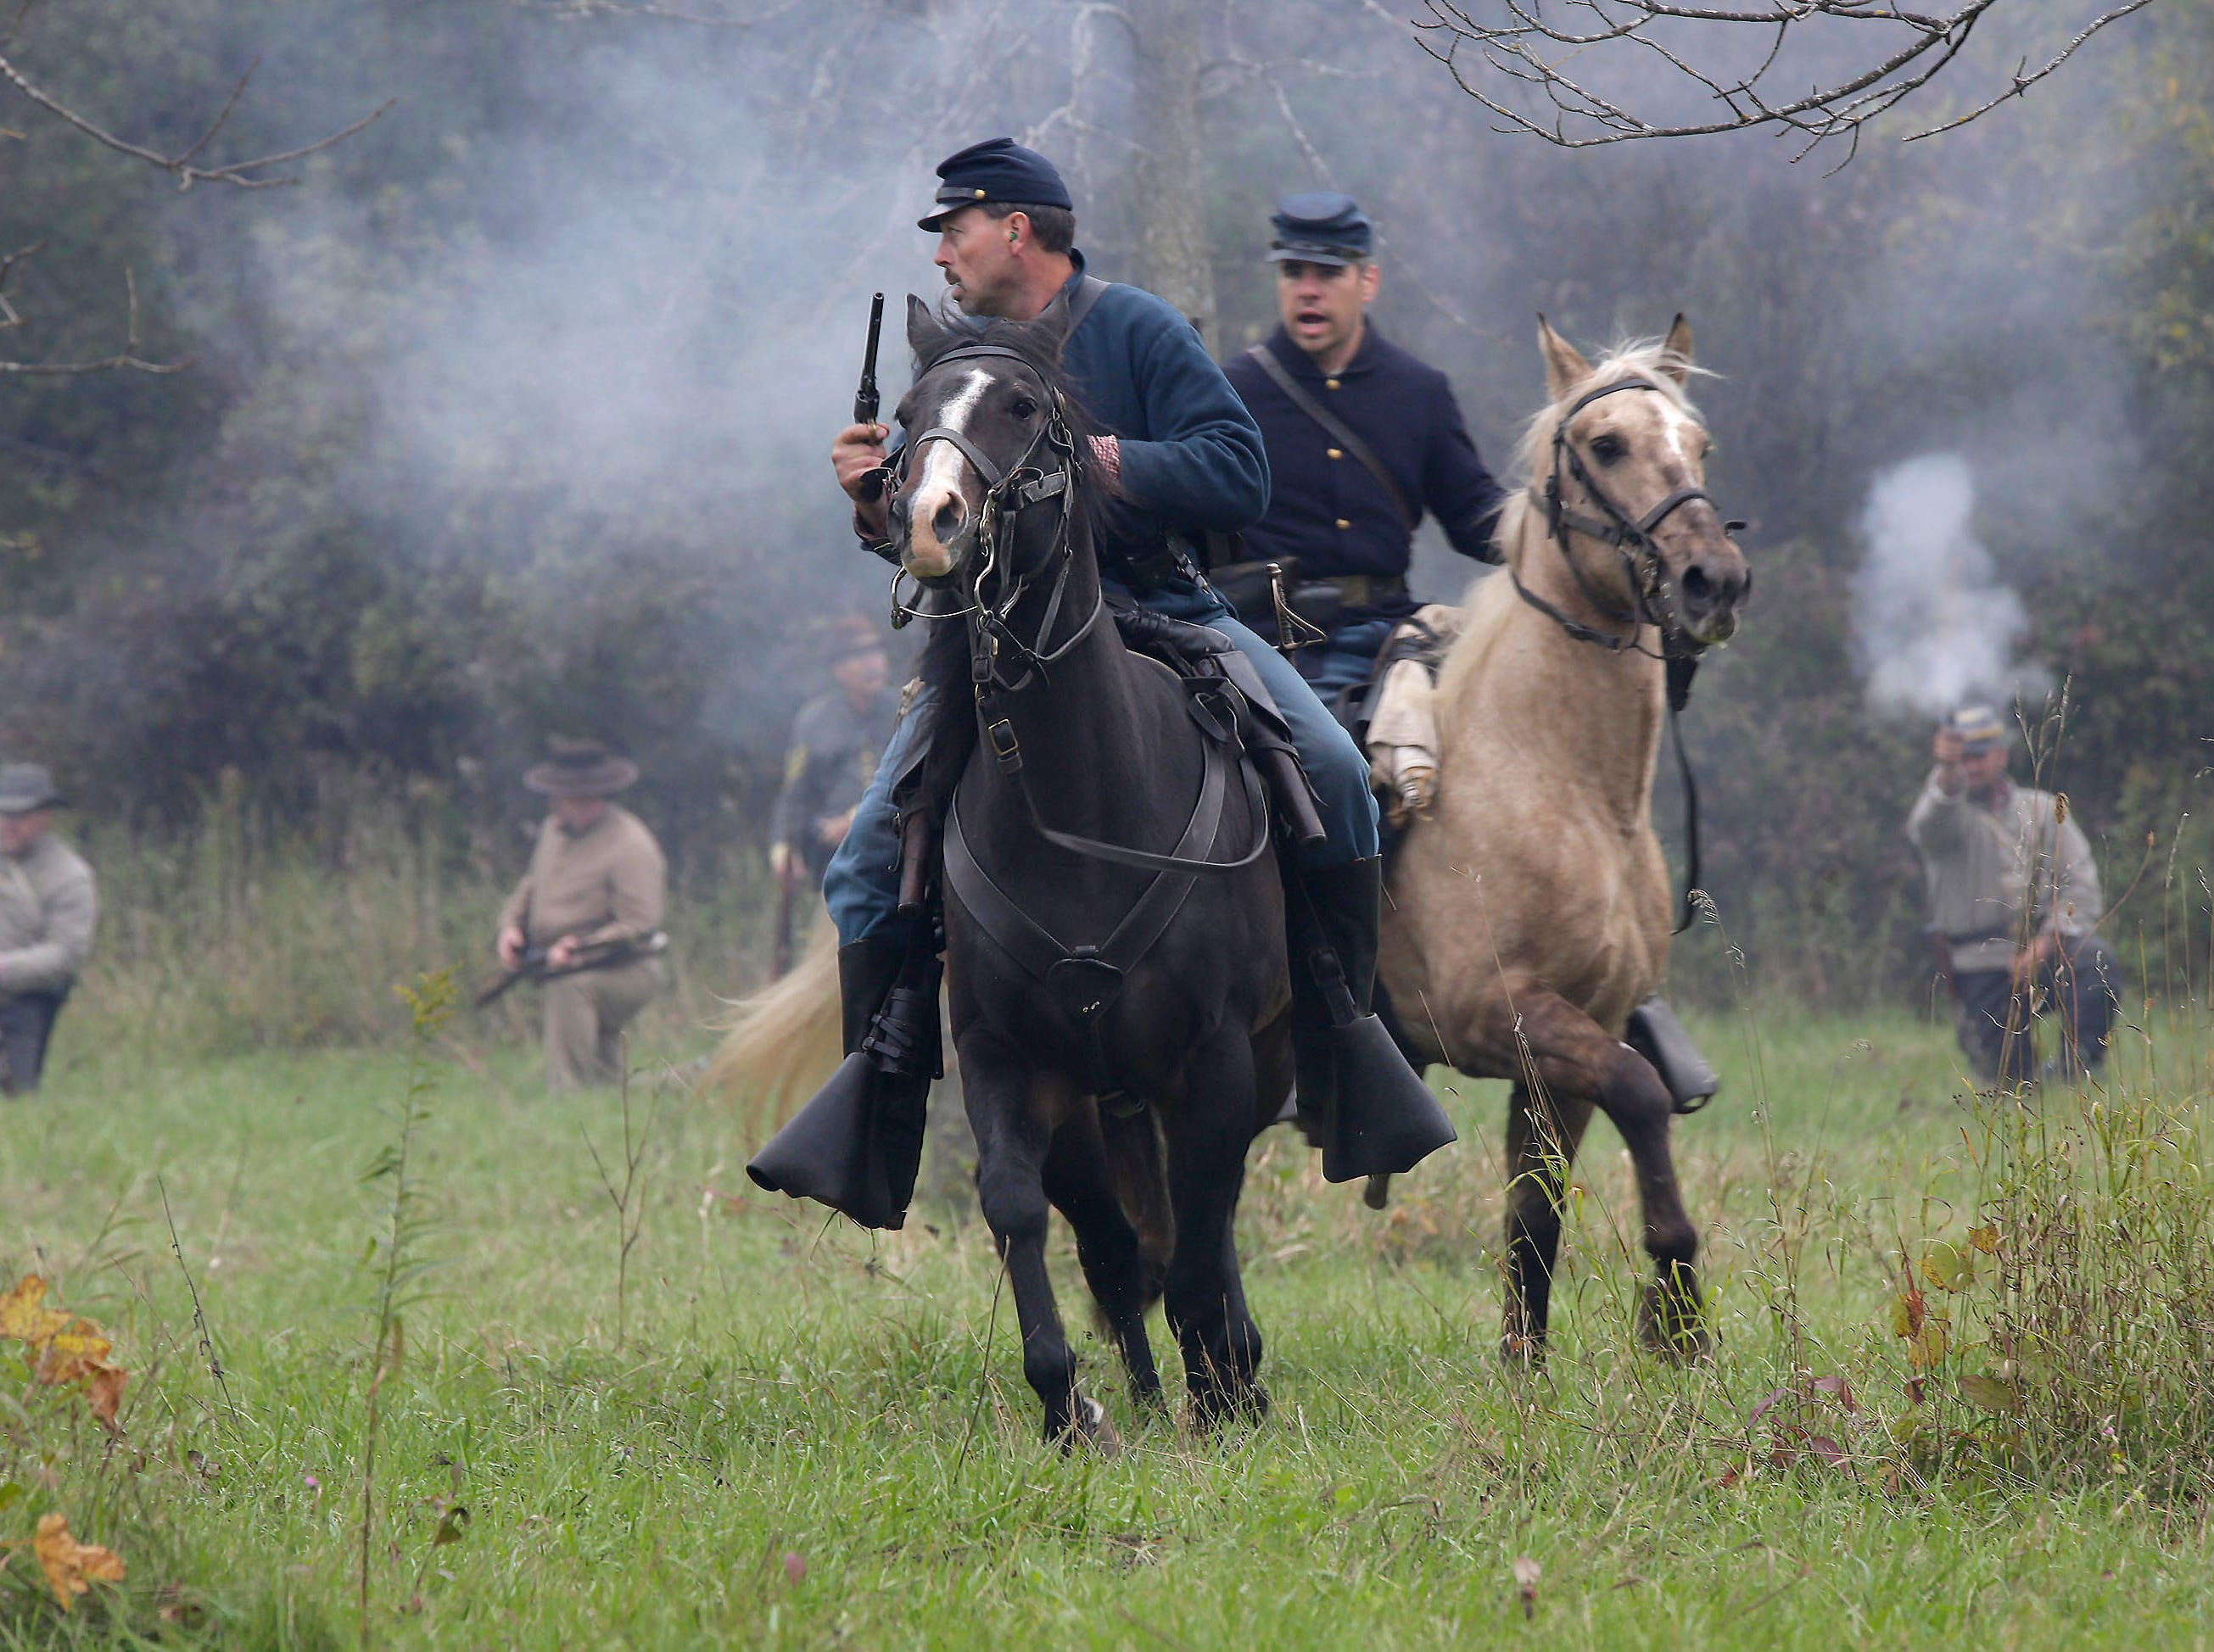 Union Calvary soldiers rides their horses during the Civil War Weekend at the Wade House, Saturday September 29, 2018, in Greenbush, Wis.